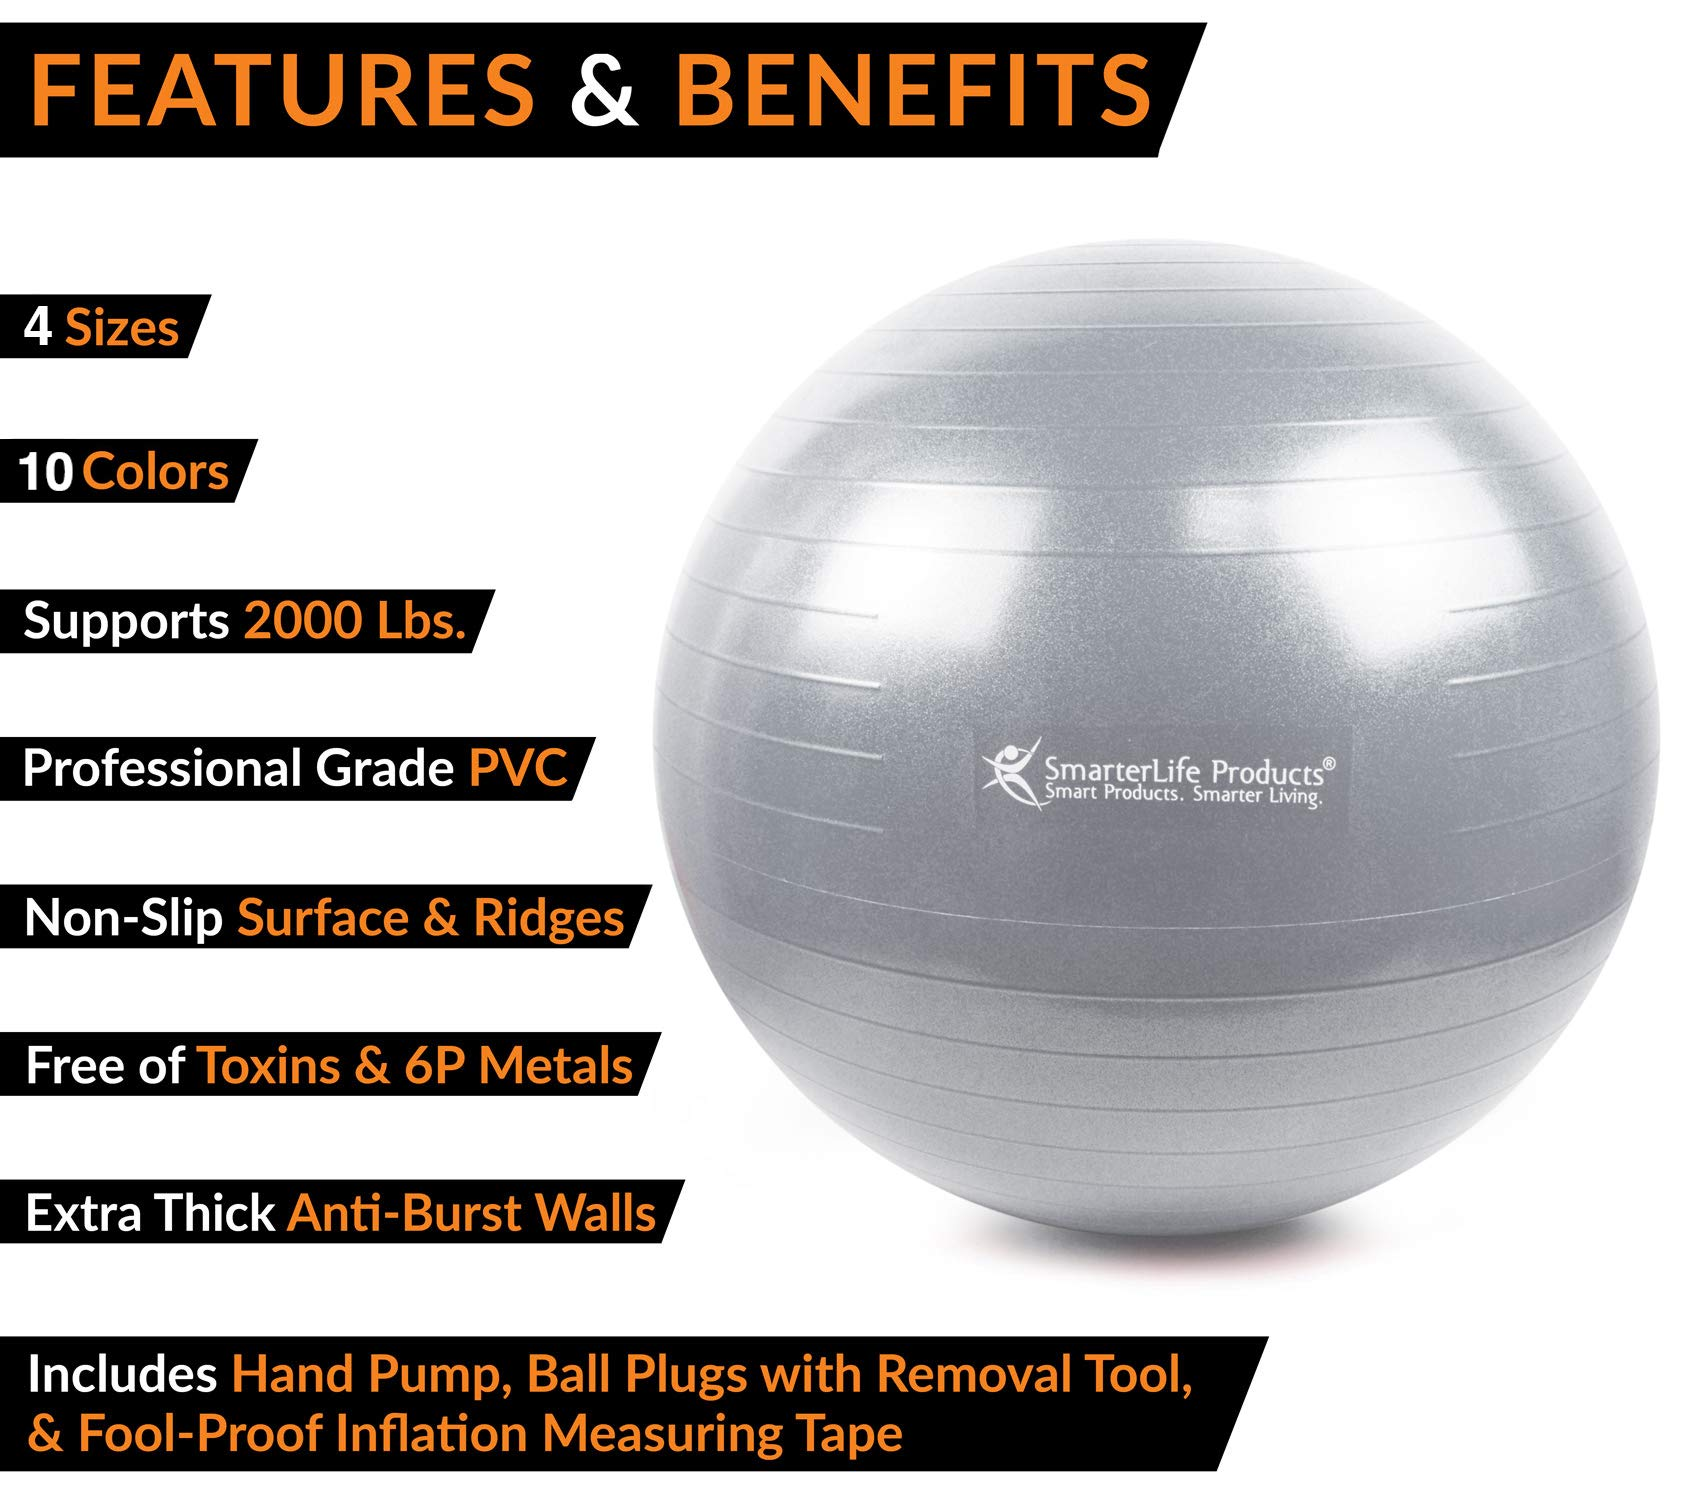 Exercise Ball for Yoga, Balance, Stability from SmarterLife - Fitness, Pilates, Birthing, Therapy, Office Ball Chair, Classroom Flexible Seating - Anti Burst, Non Slip + Workout Guide (Silver, 65cm) by SmarterLife Products (Image #3)